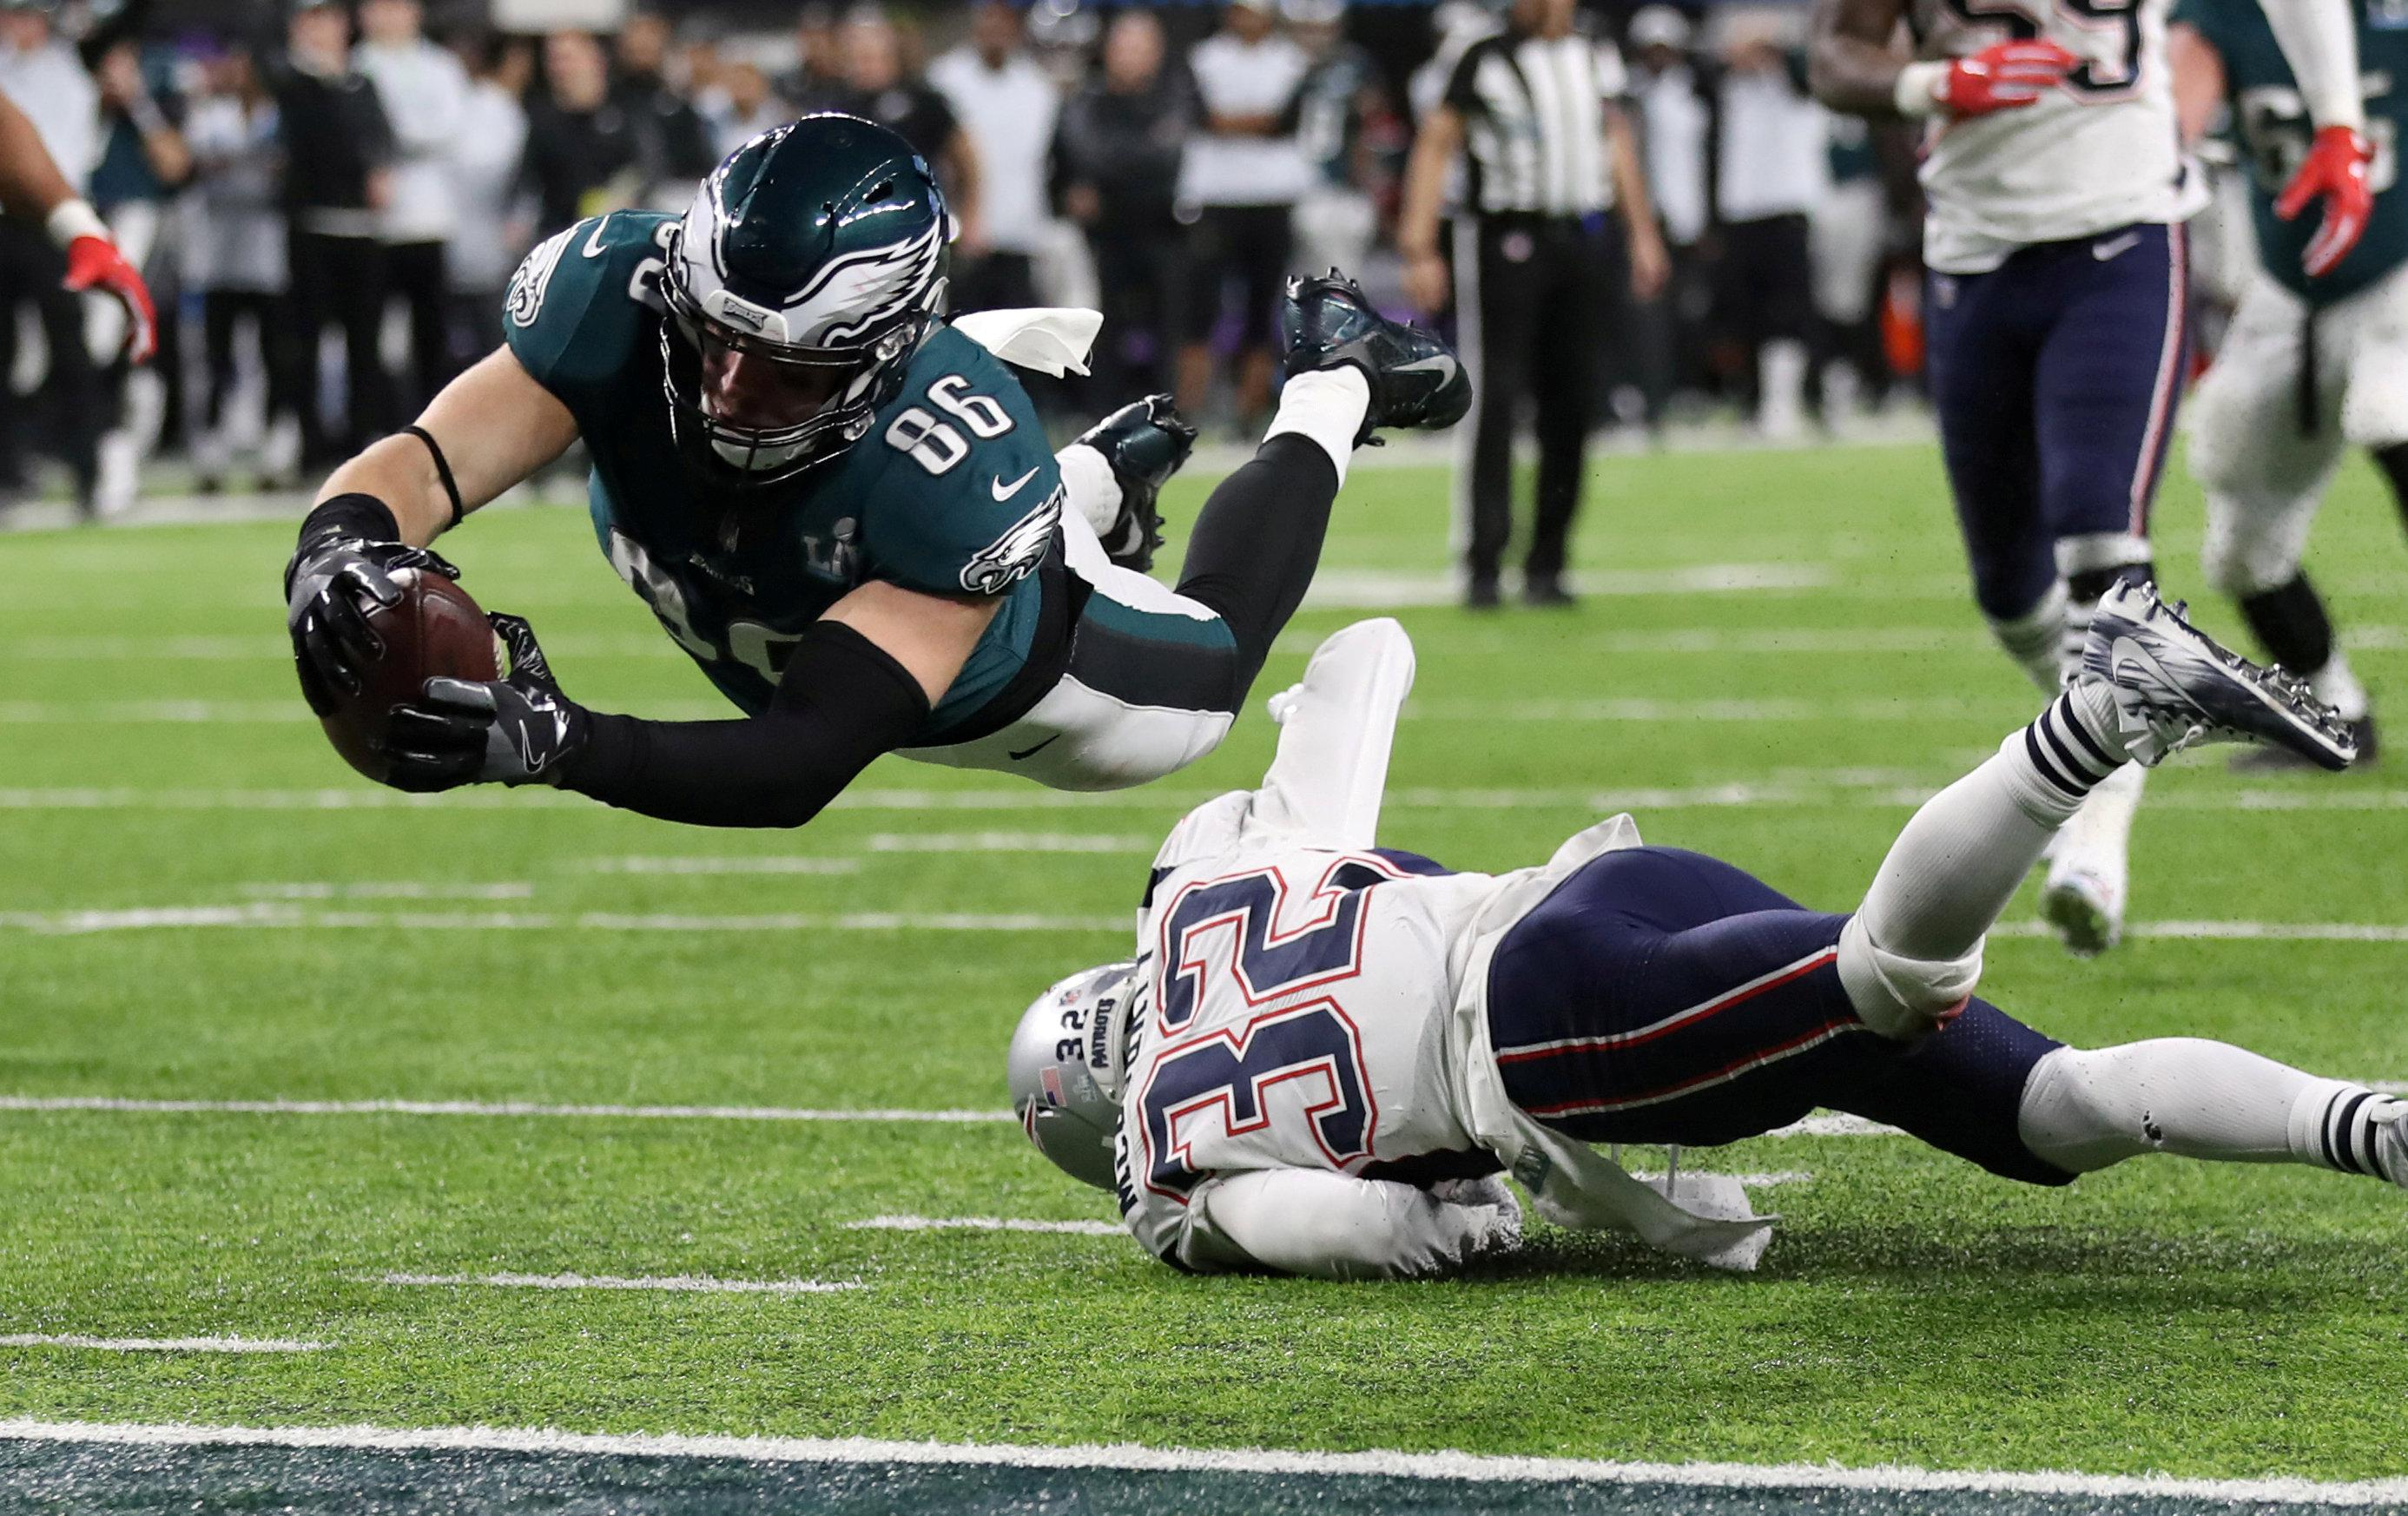 Zach Ertz scores a touchdown for the Philadelphia Eagles as they march to victory over the New England Patriots